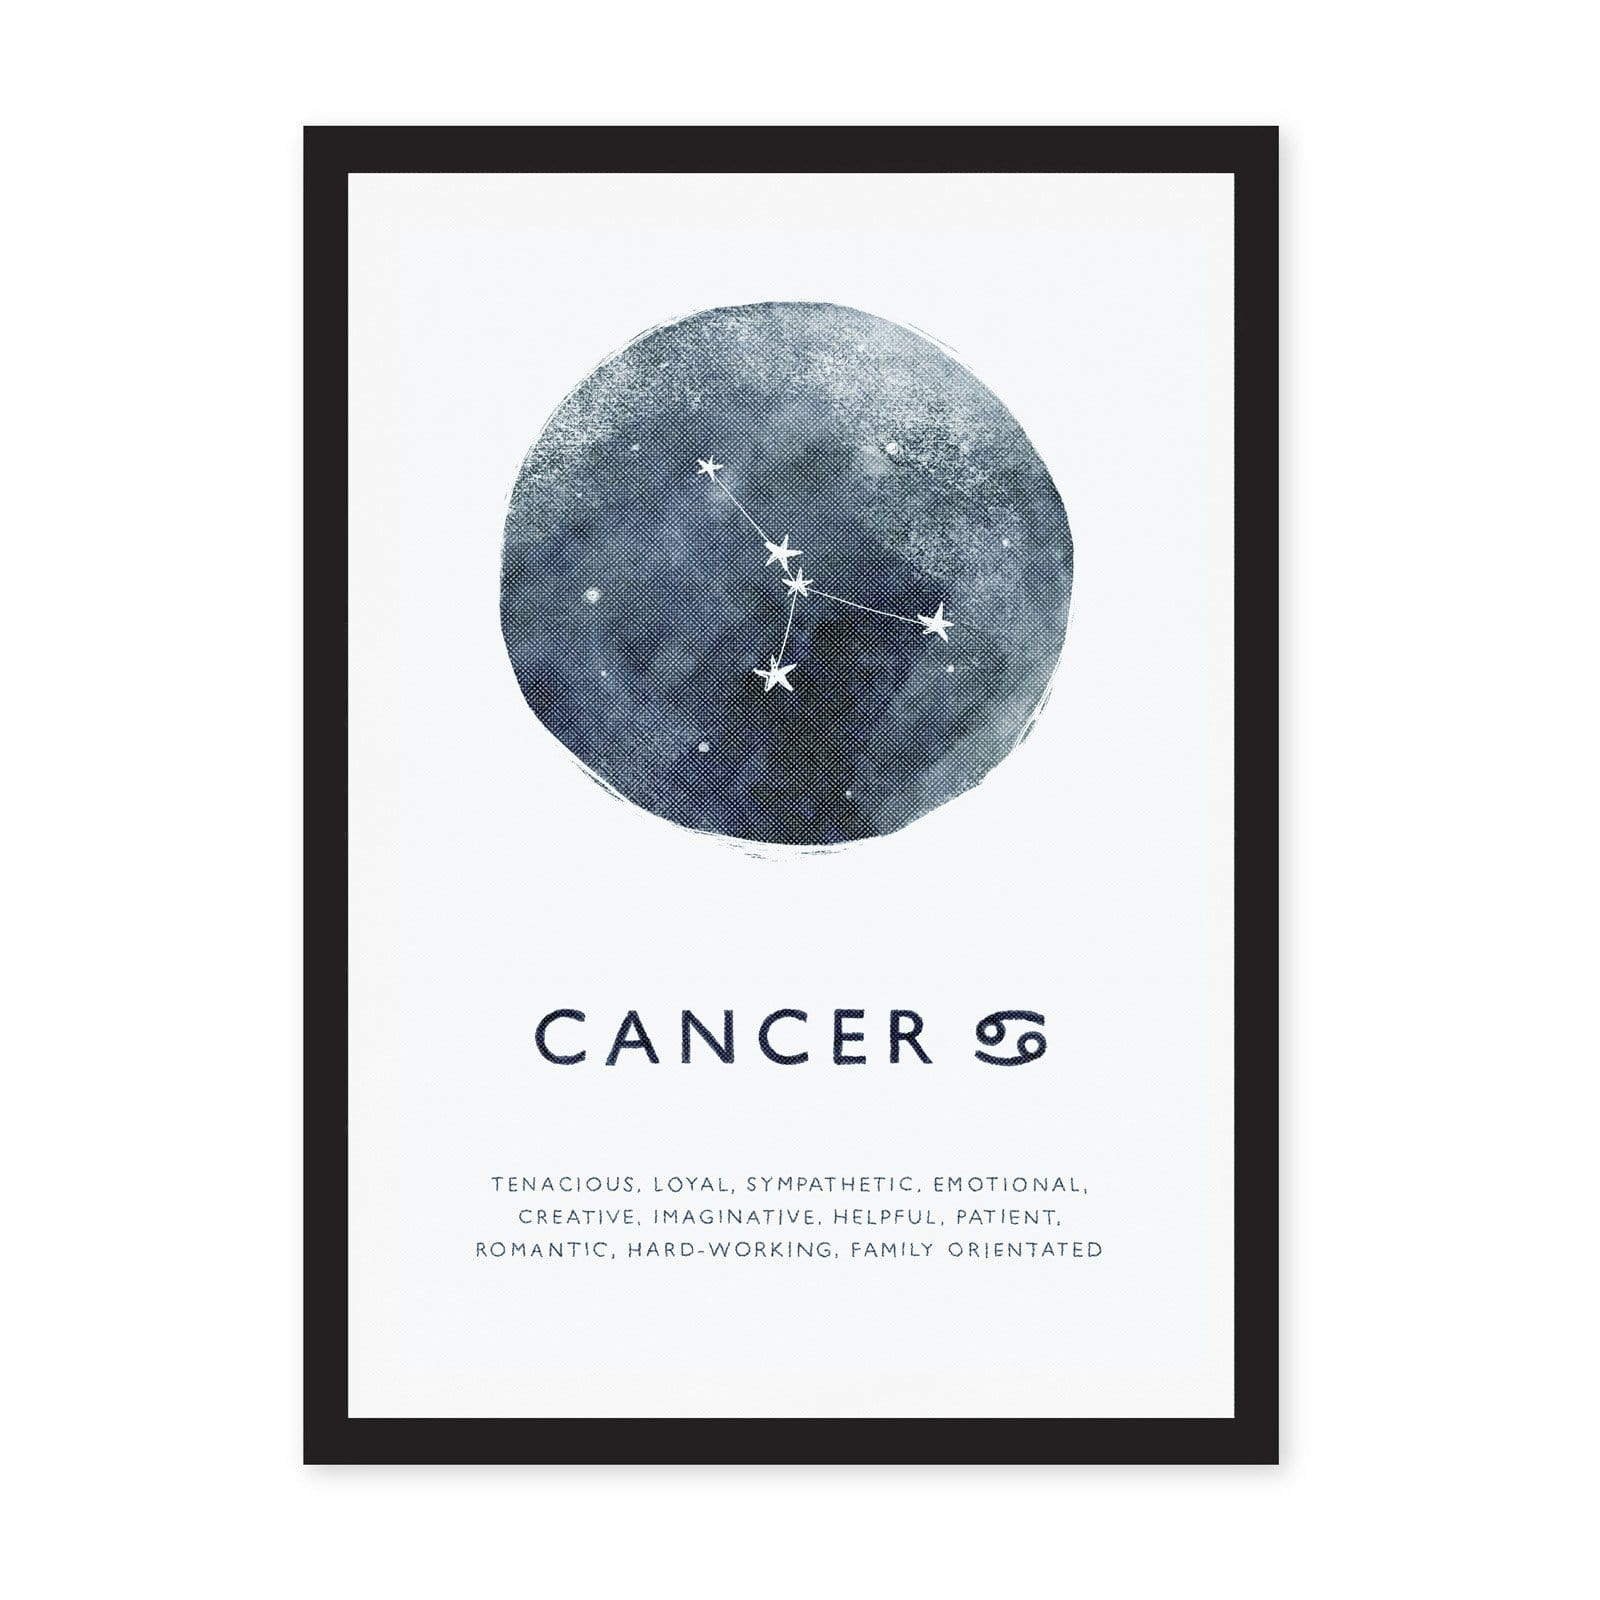 Zodiac Cancer star sign in blue watercolour background, with personality characteristics listed below